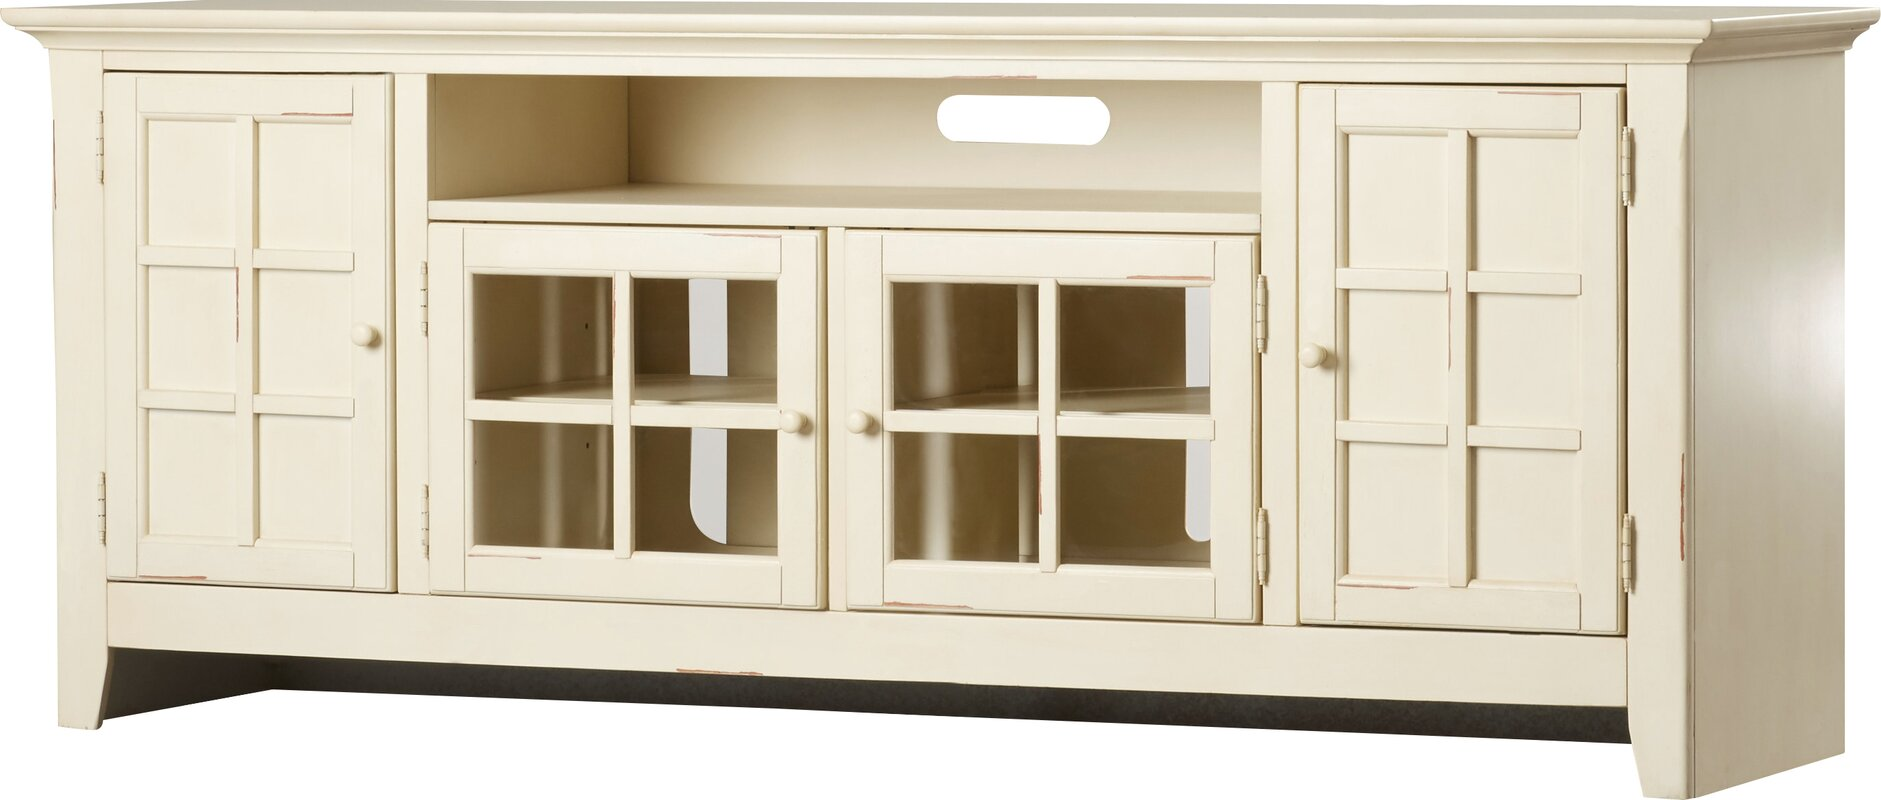 to tv transformation treasure with copy curbside hutch final feature doors living trash room cabinet